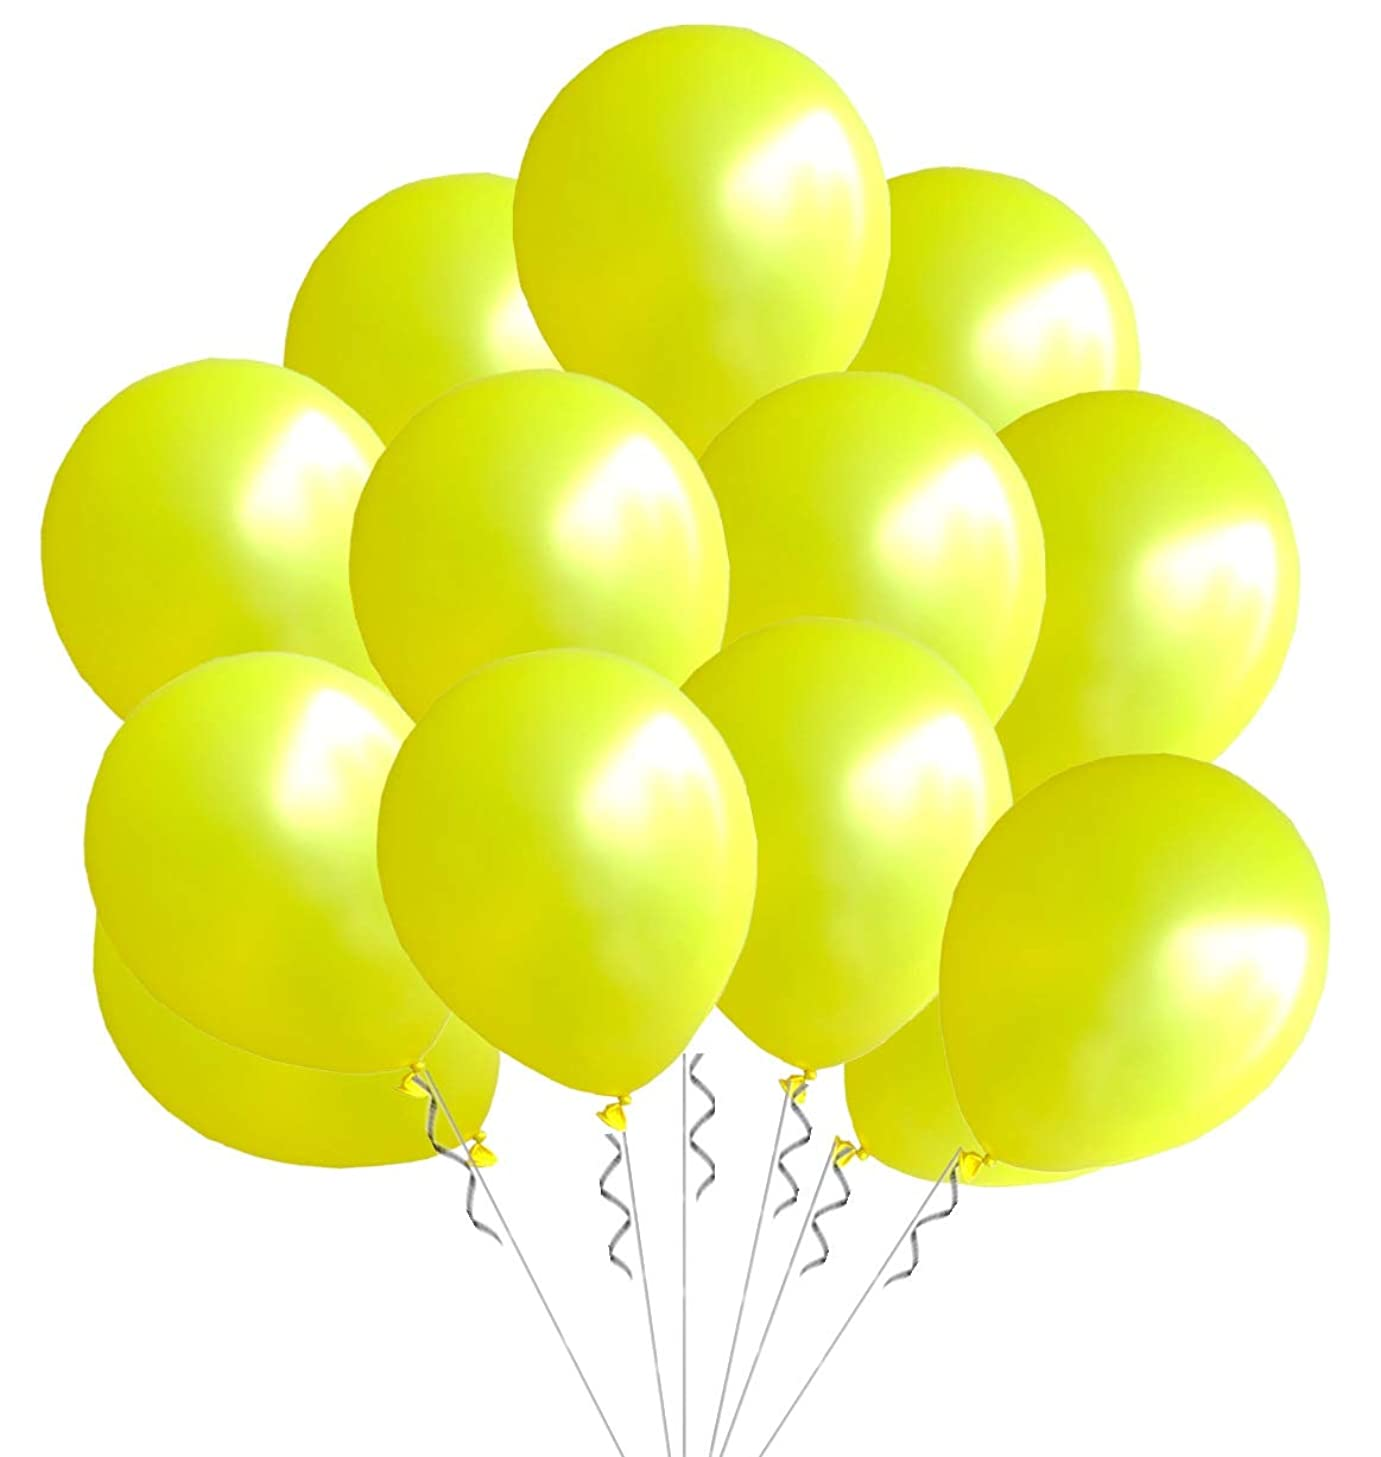 Elecrainbow 100 Pack 12 Inch 3.2 g/pc Thicken Round Pearlescent Latex Party Yellow Balloons for Party Decorations, Yellow